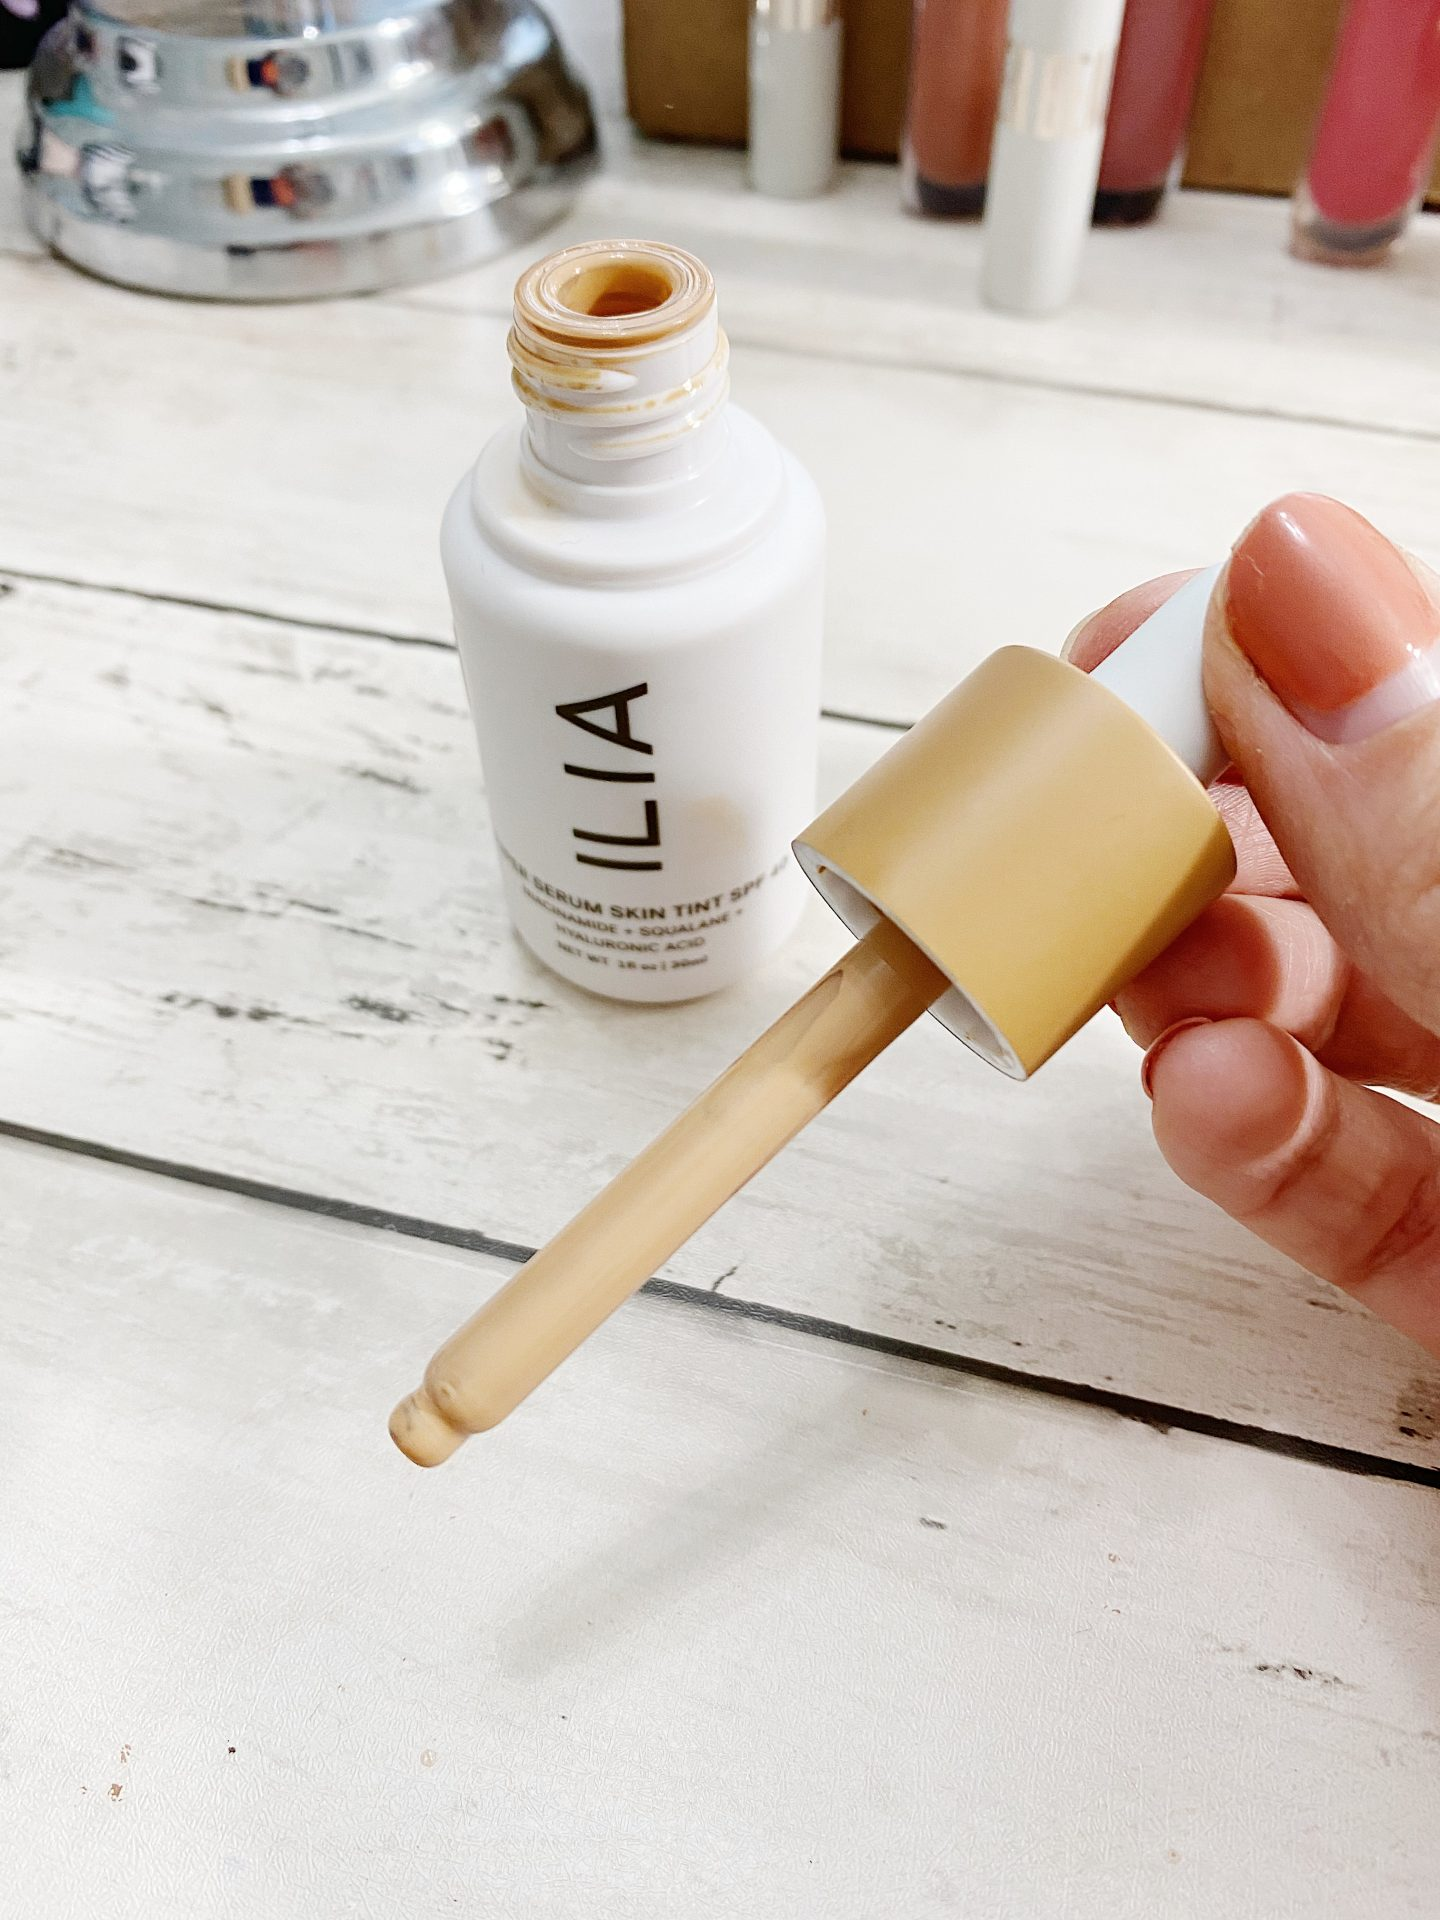 Ilia Super Serum Skin Tint SPF40 ST 11 Matira | New Clean Beauty Haul